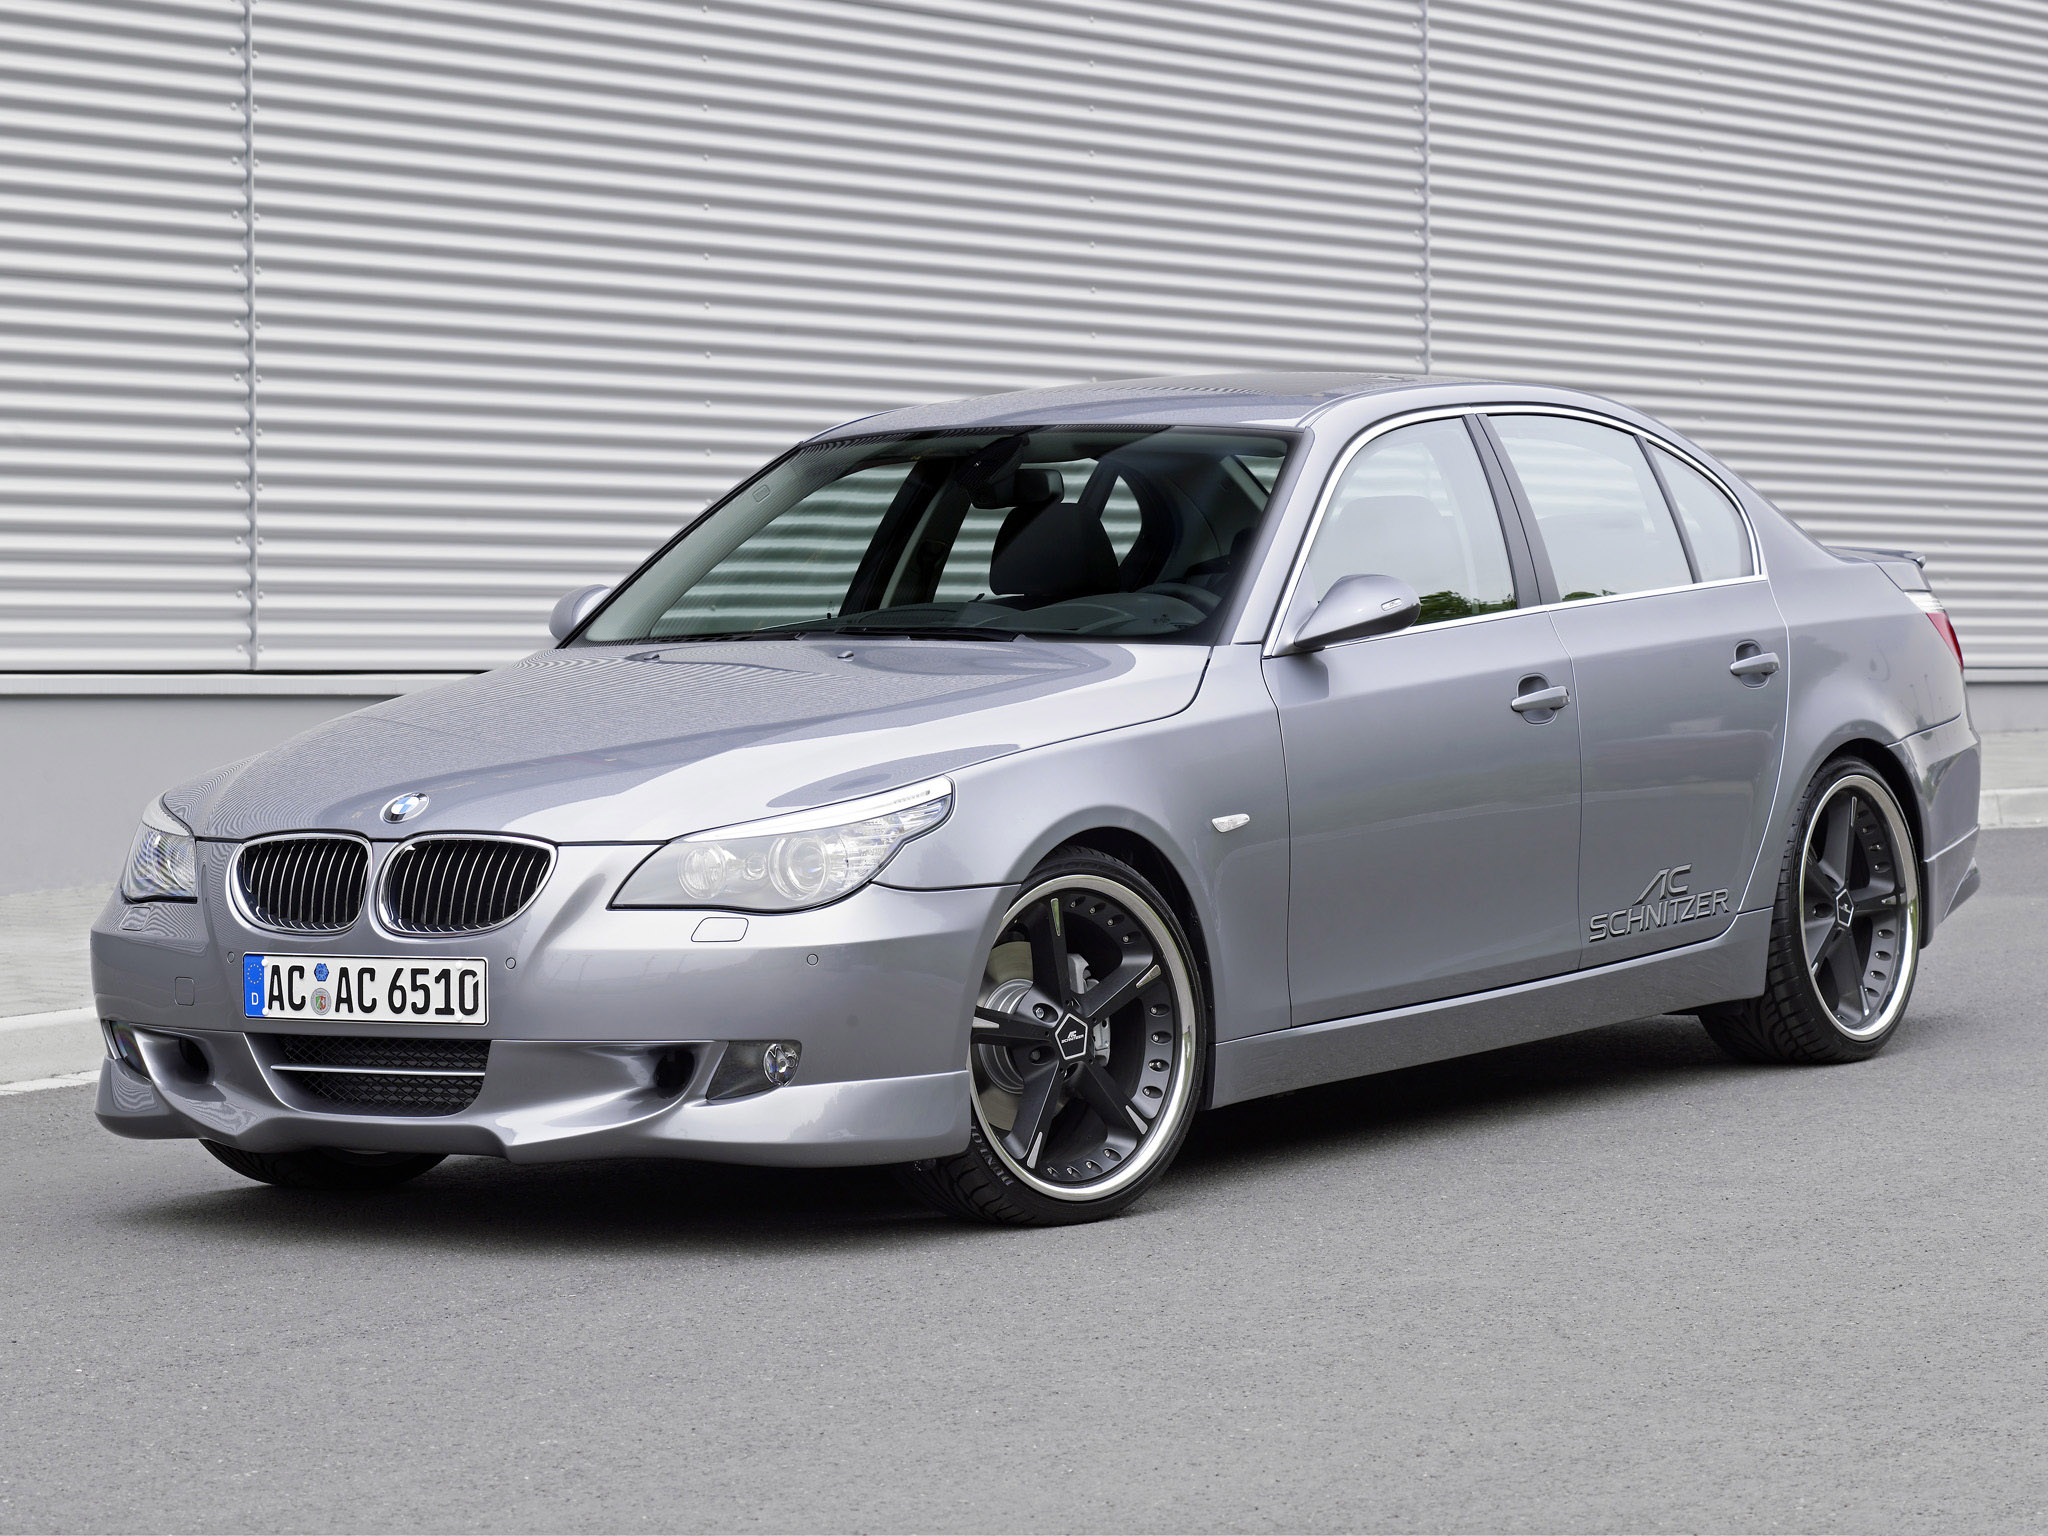 ac schnitzer bmw 5 series acs5 e60 2008 ac schnitzer bmw 5 series acs5 e60 2008 photo 03 car. Black Bedroom Furniture Sets. Home Design Ideas